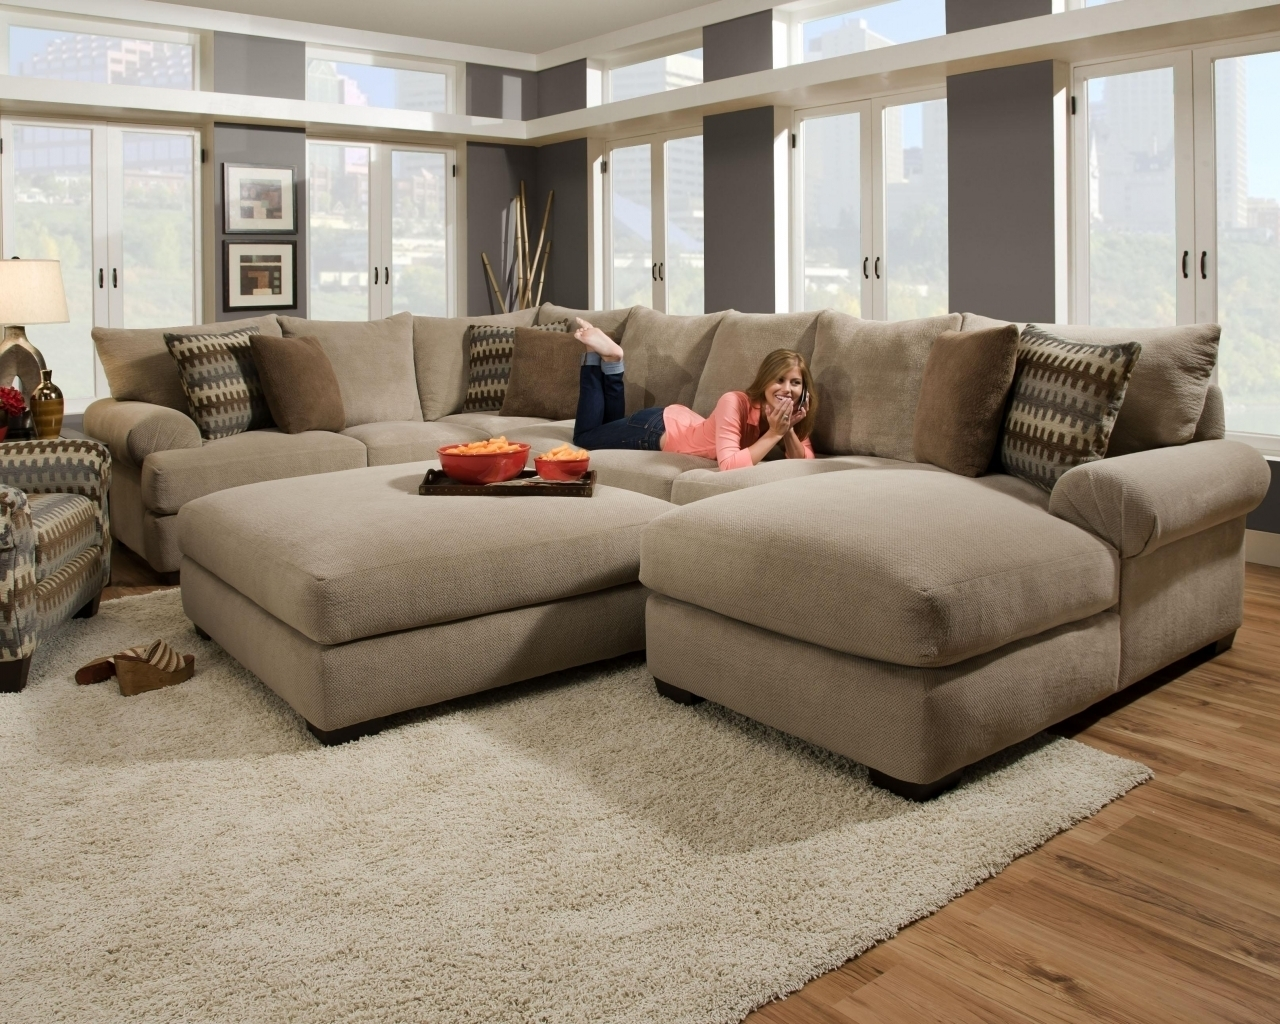 Amazing Sectional Sofa With Oversized Ottoman 59 For Your Best Within Quality Sectional Sofas (Image 1 of 10)